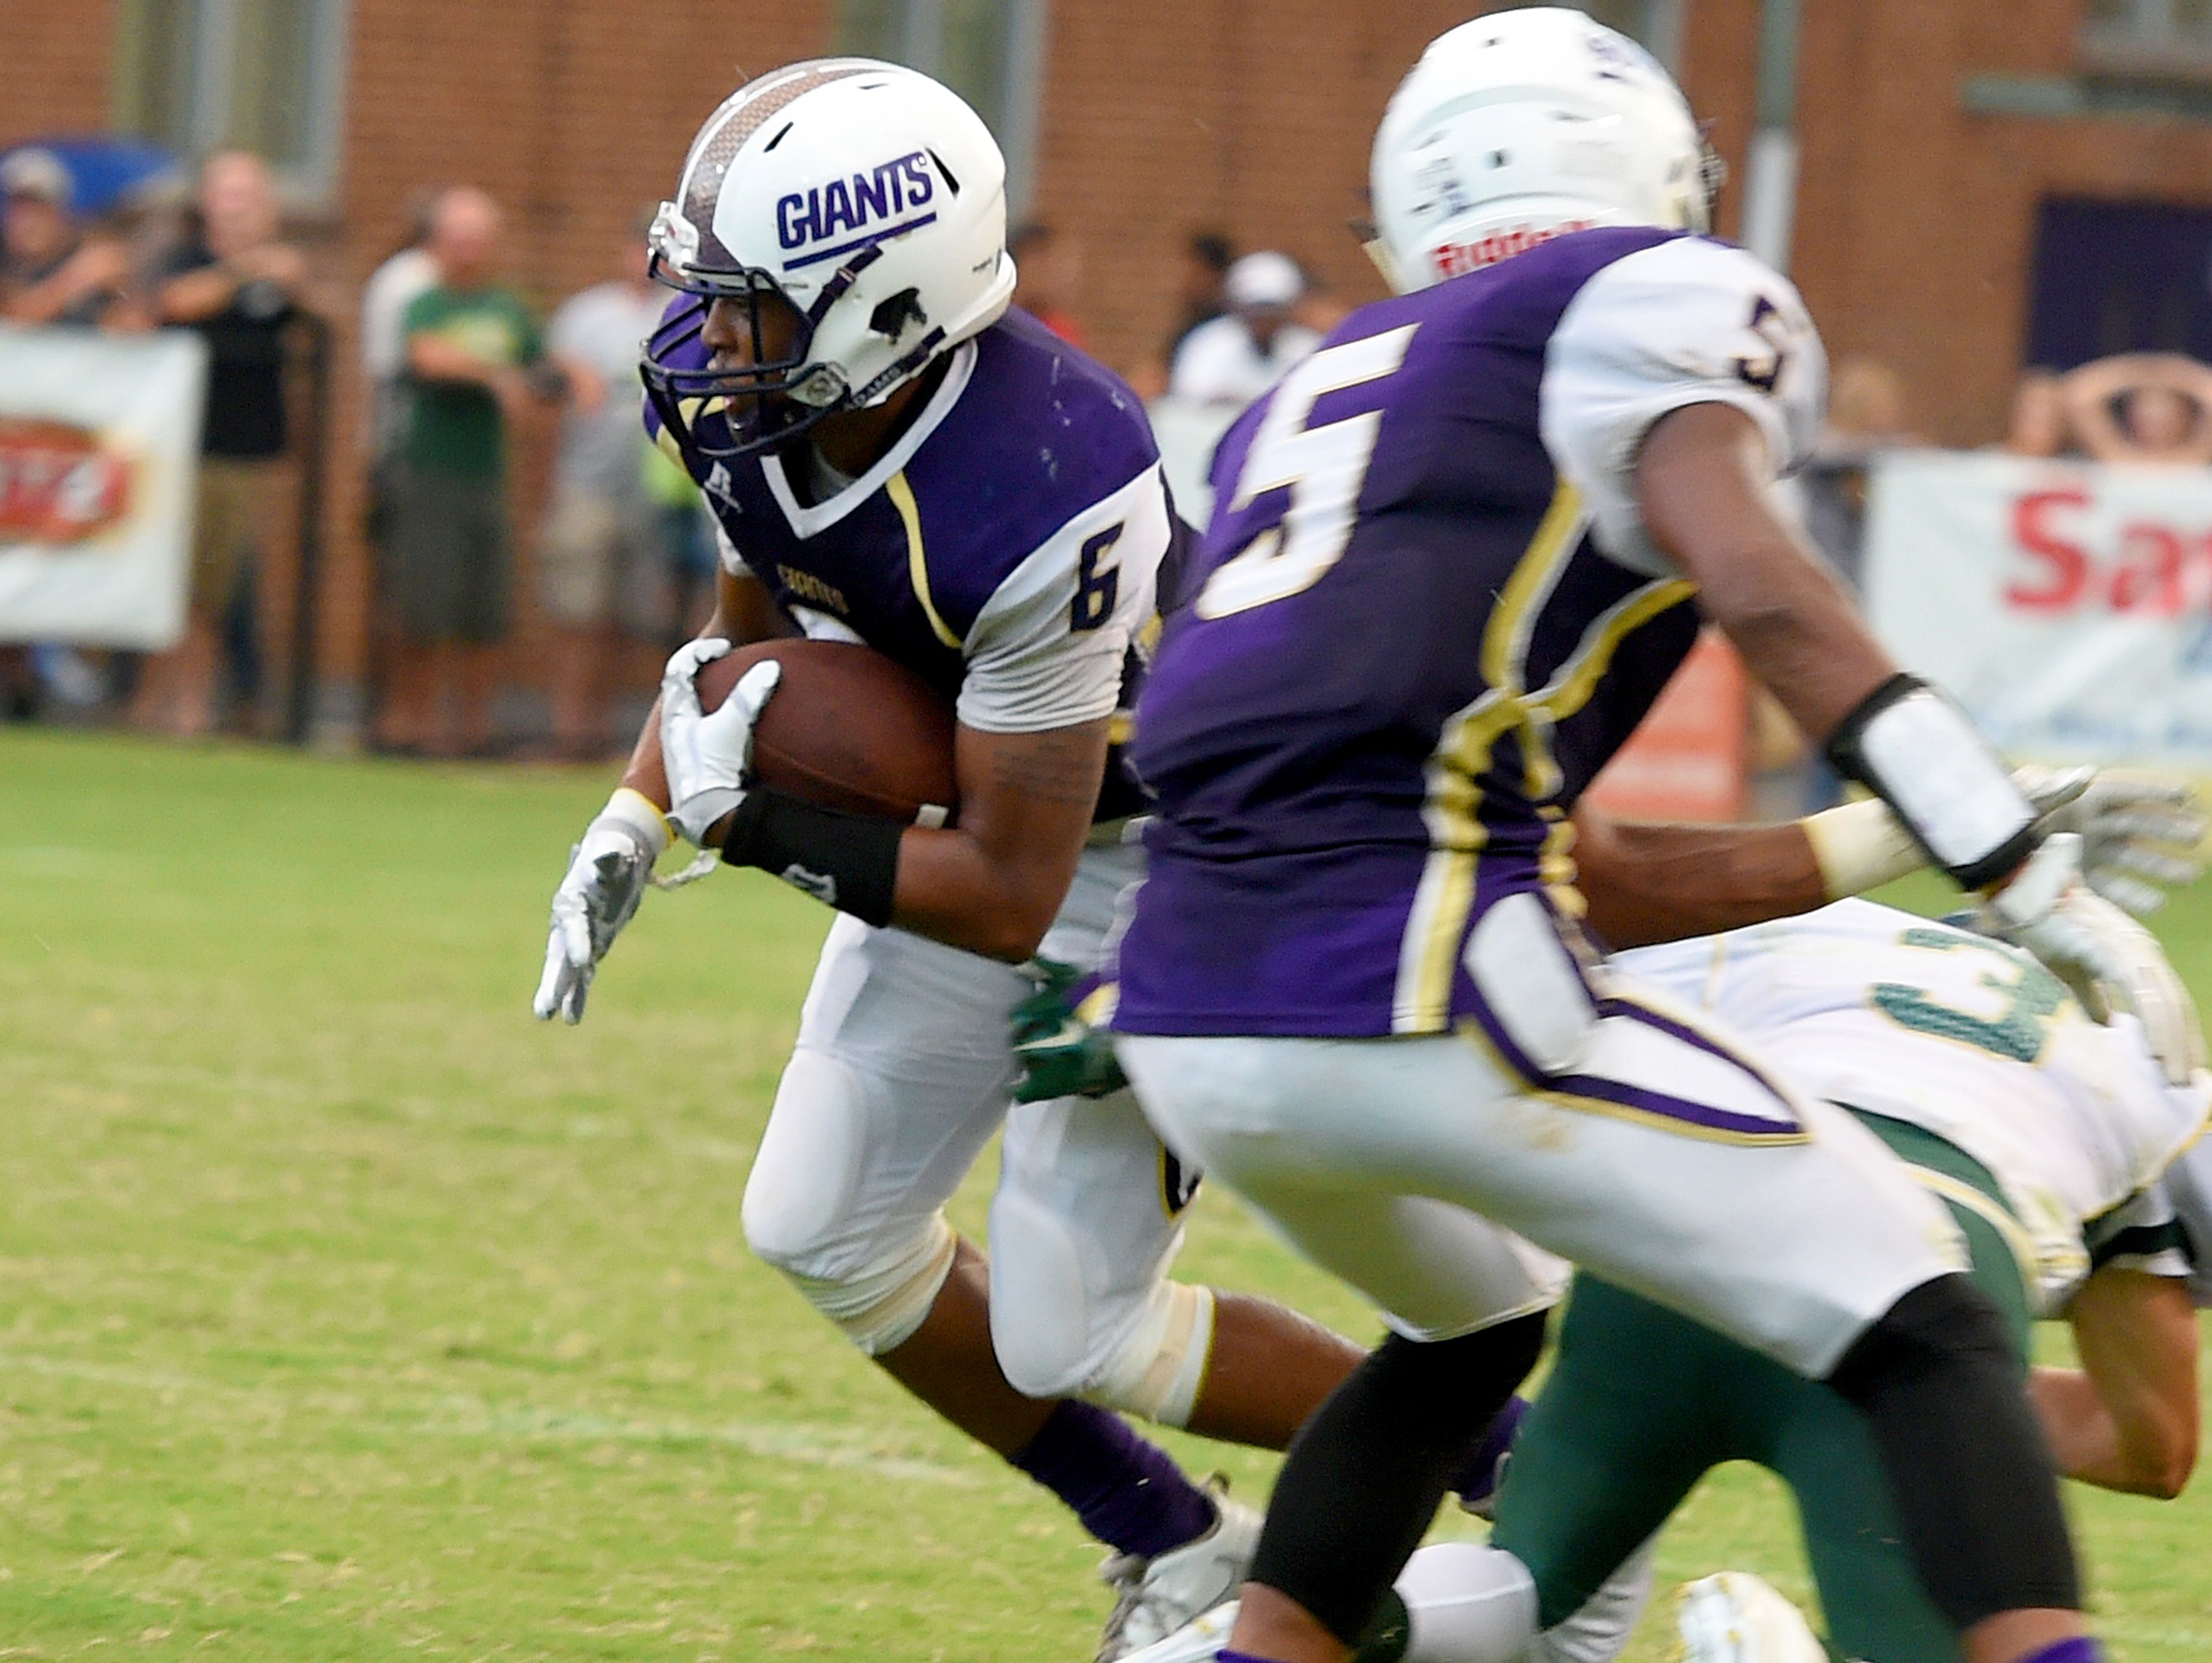 Waynesboro's Jadaciss Williams was named a first-team defensive back on the All-Conference 29 football team.